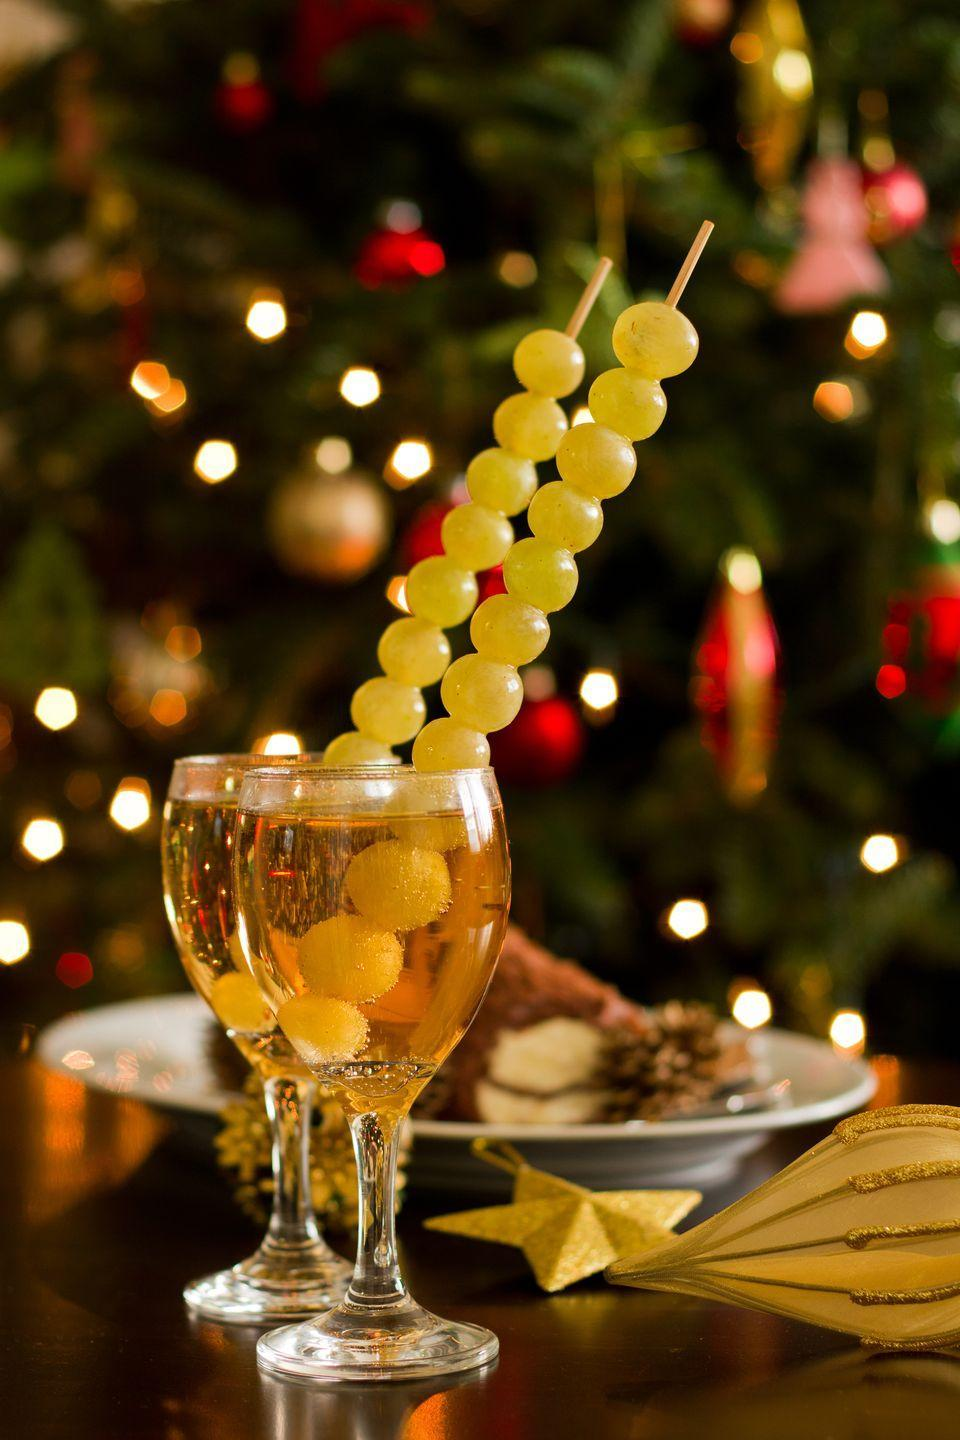 """<p>This food superstition that originated in Spain is meant to bring you luck for the year ahead. Just eat 12 grapes at midnight—one for every month—or put them on a skewer and serve as a fun <a href=""""https://www.countryliving.com/food-drinks/g2872/new-years-party-champagne-cocktails/"""" rel=""""nofollow noopener"""" target=""""_blank"""" data-ylk=""""slk:New Year's Eve cocktail"""" class=""""link rapid-noclick-resp"""">New Year's Eve cocktail</a> garnish.</p>"""